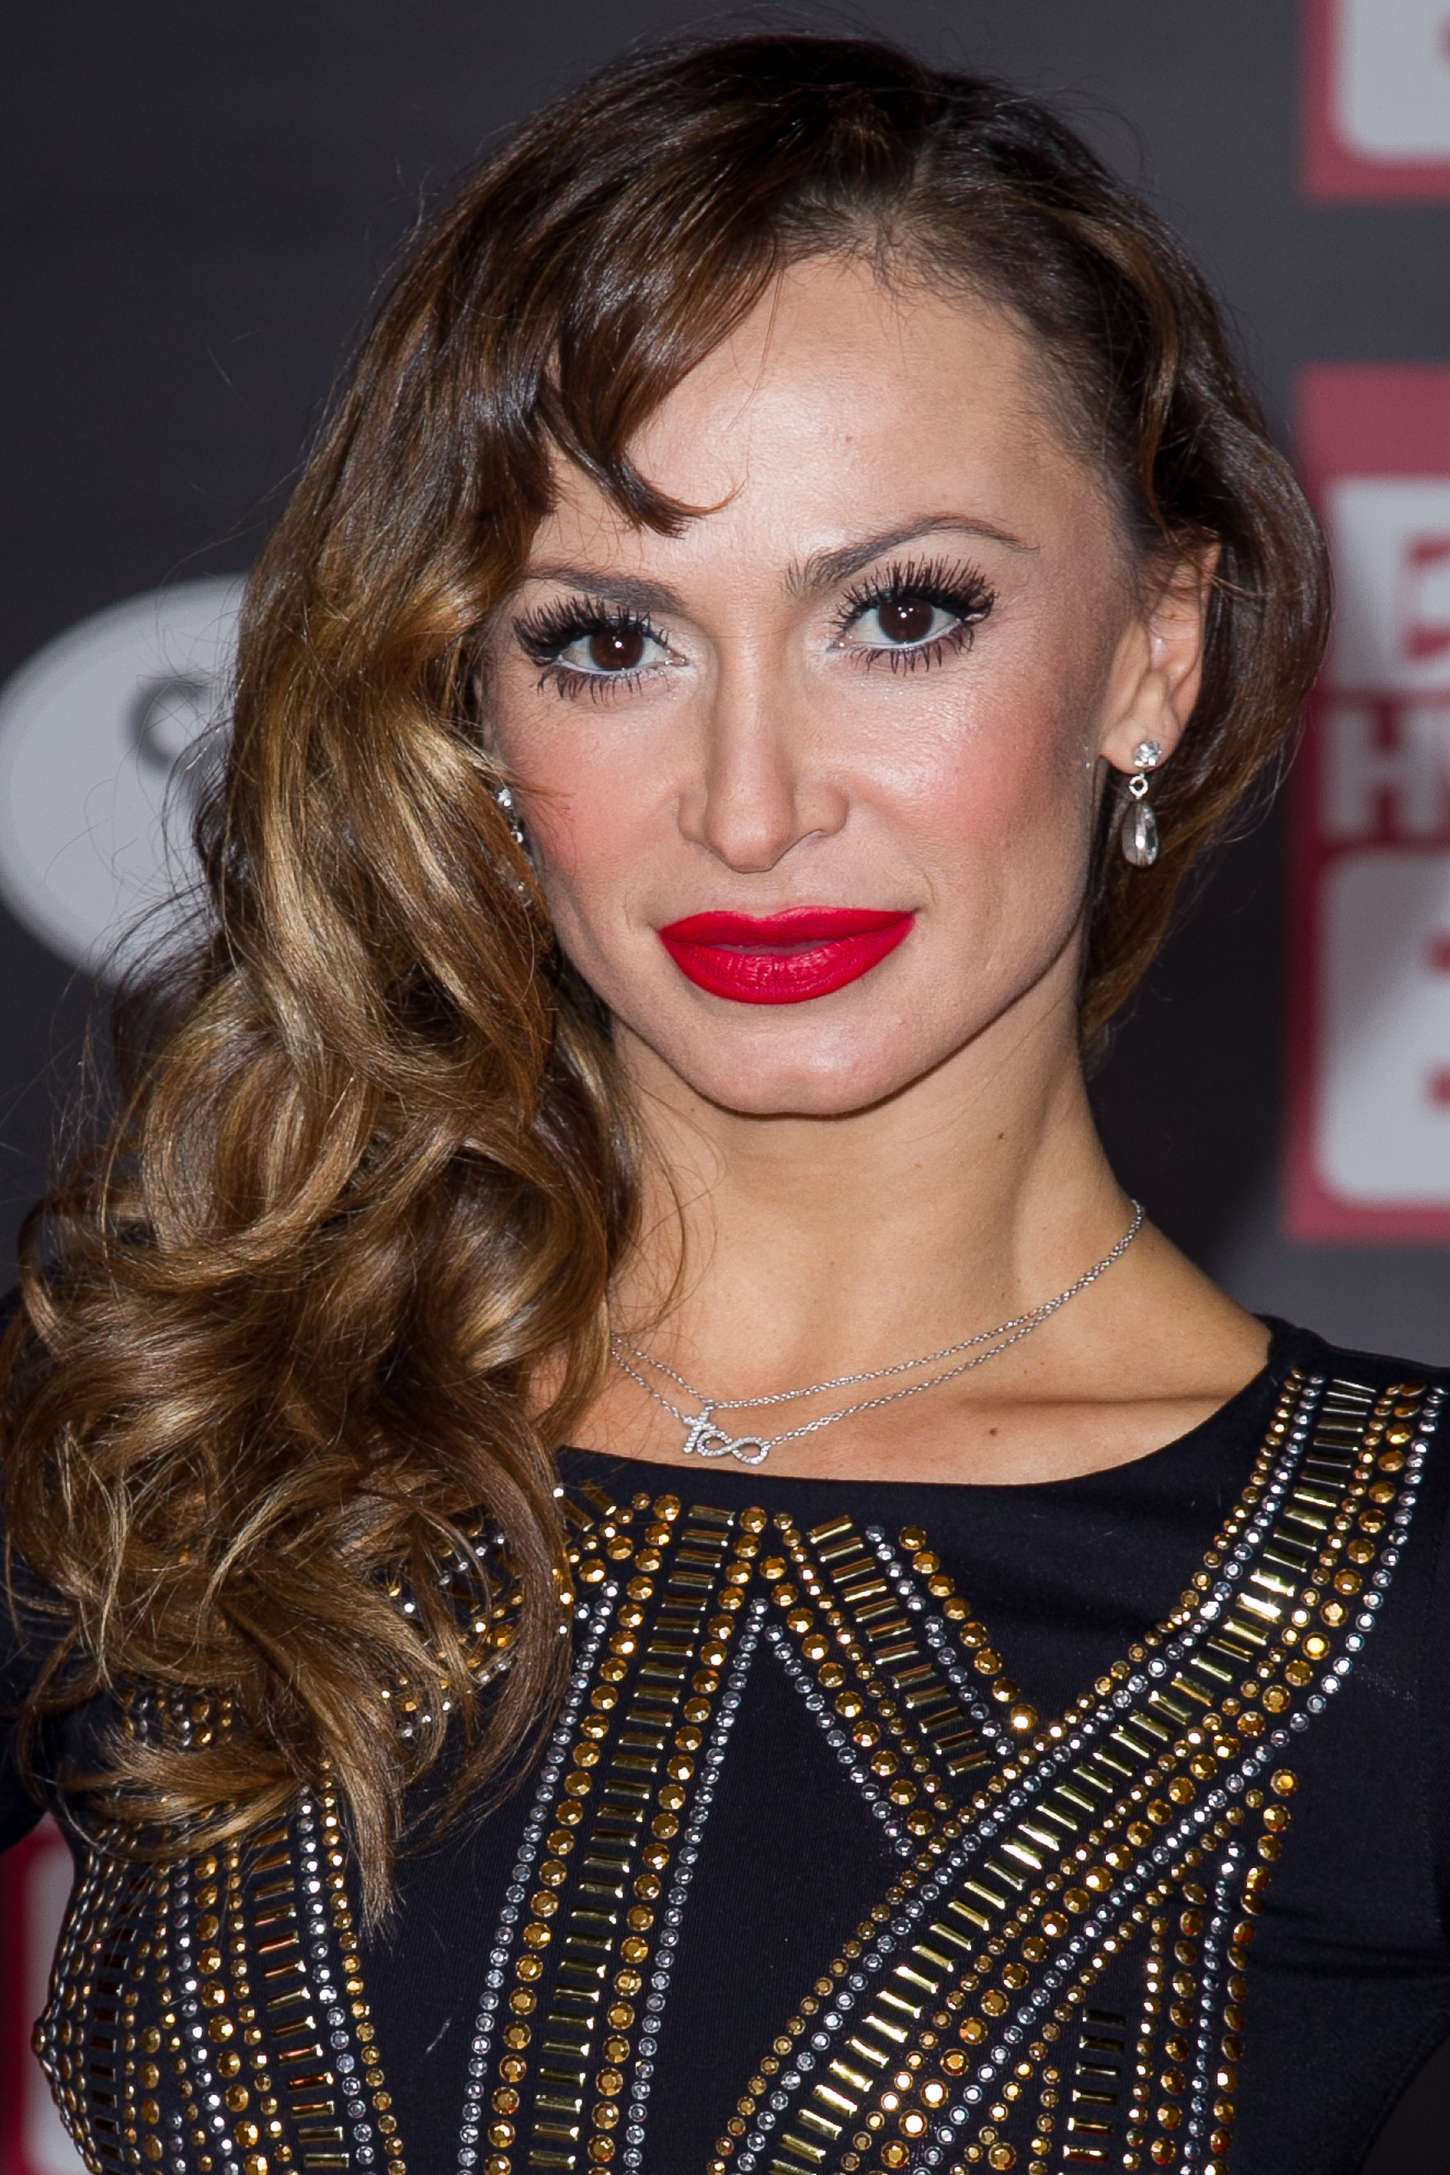 Karina Smirnoff at Premiere of Big Hero in Hollywood